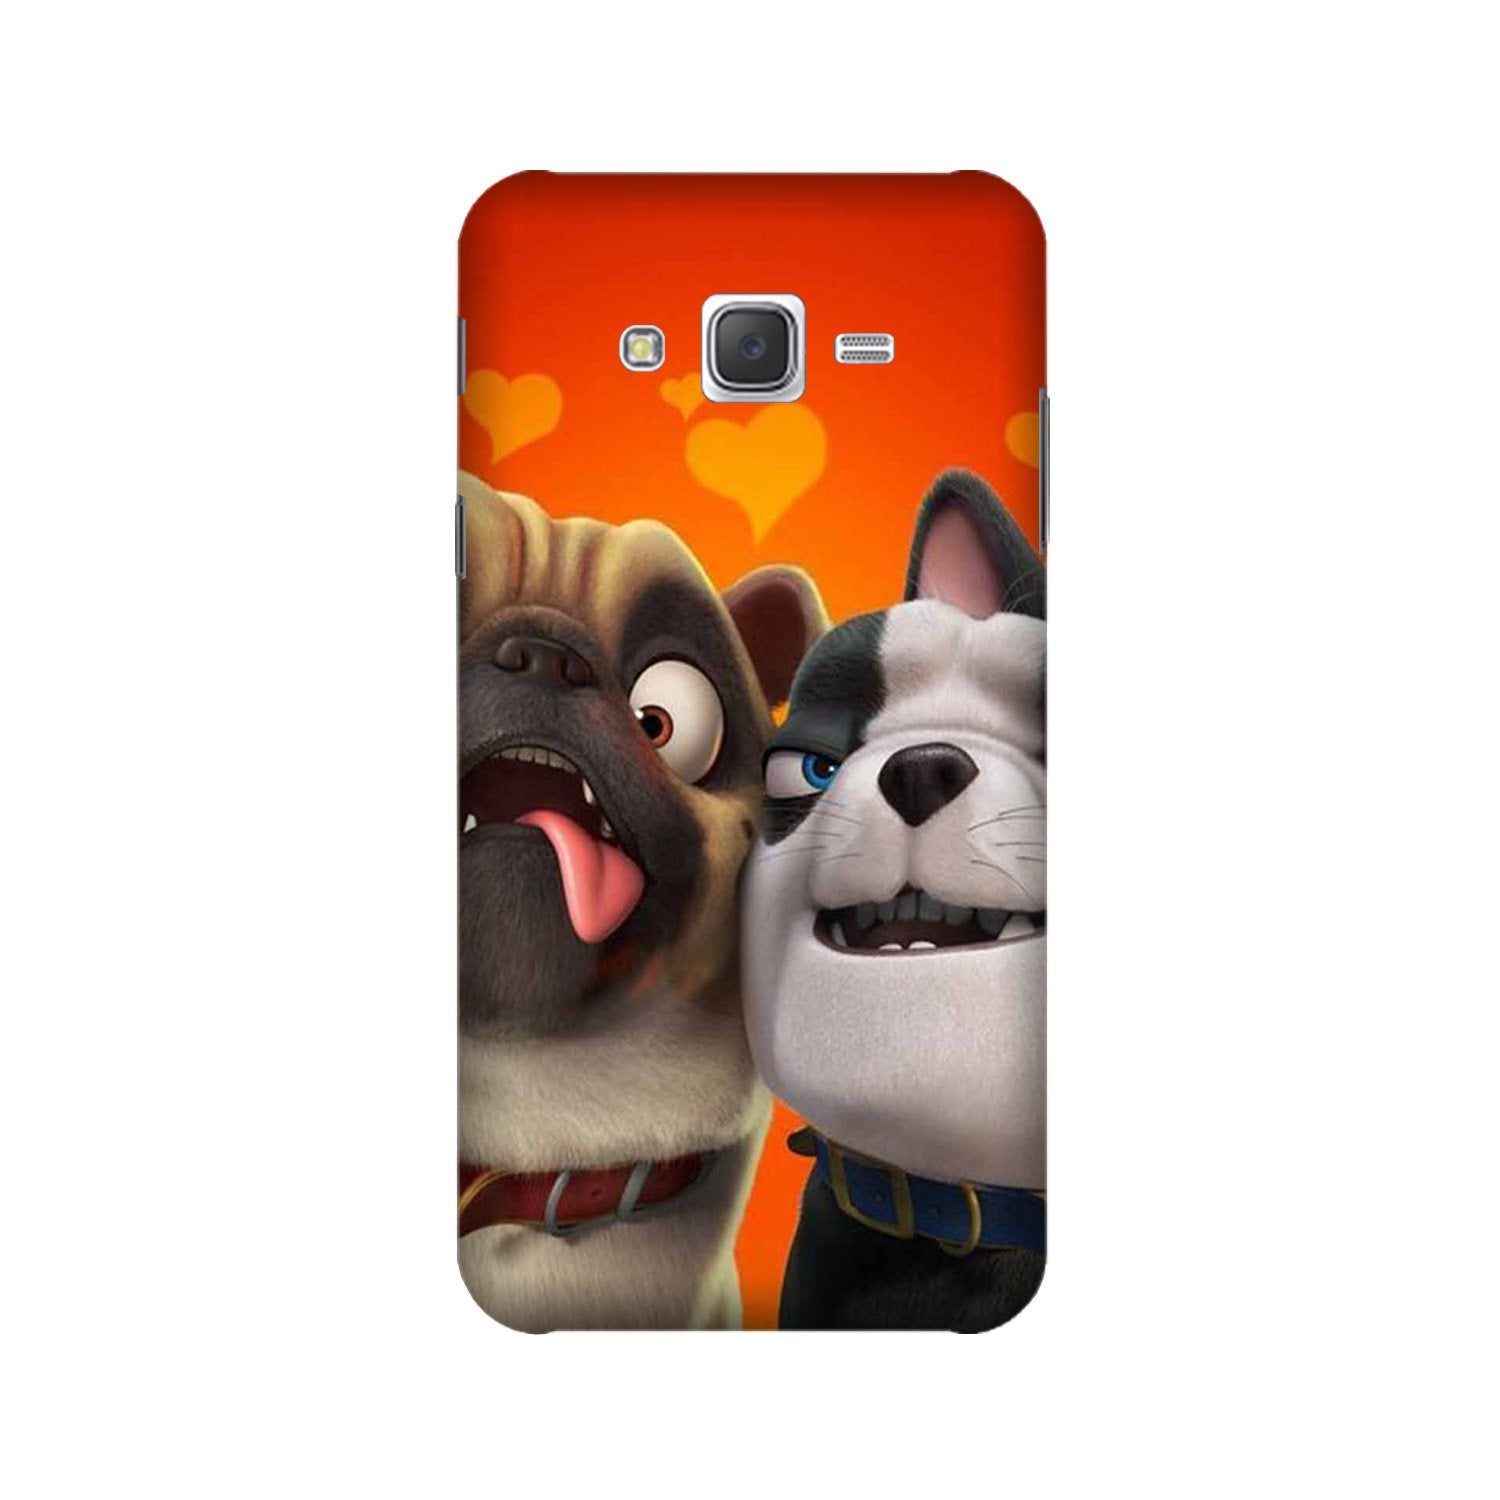 Dog Puppy Mobile Back Case for Galaxy A3 (2015) (Design - 350)